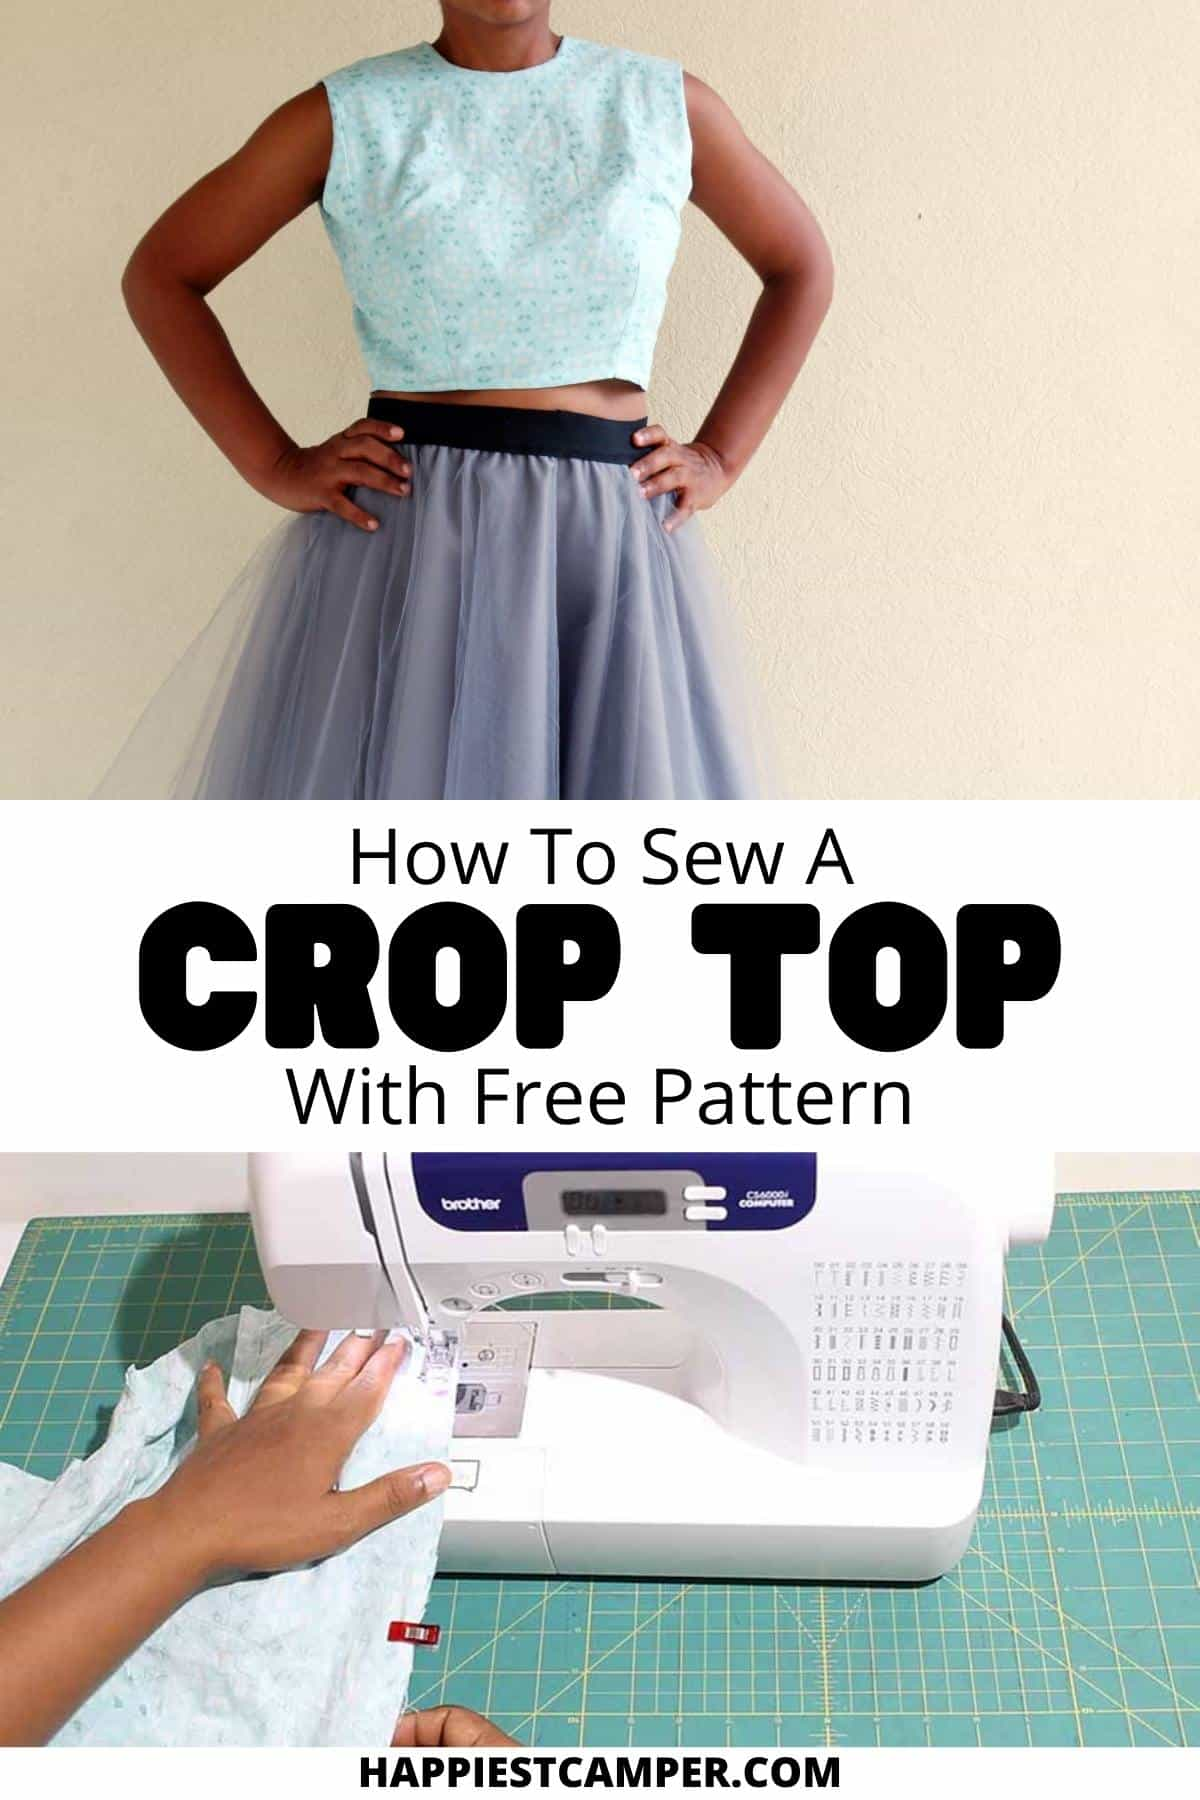 How To Sew A Crop Top With Free Pattern